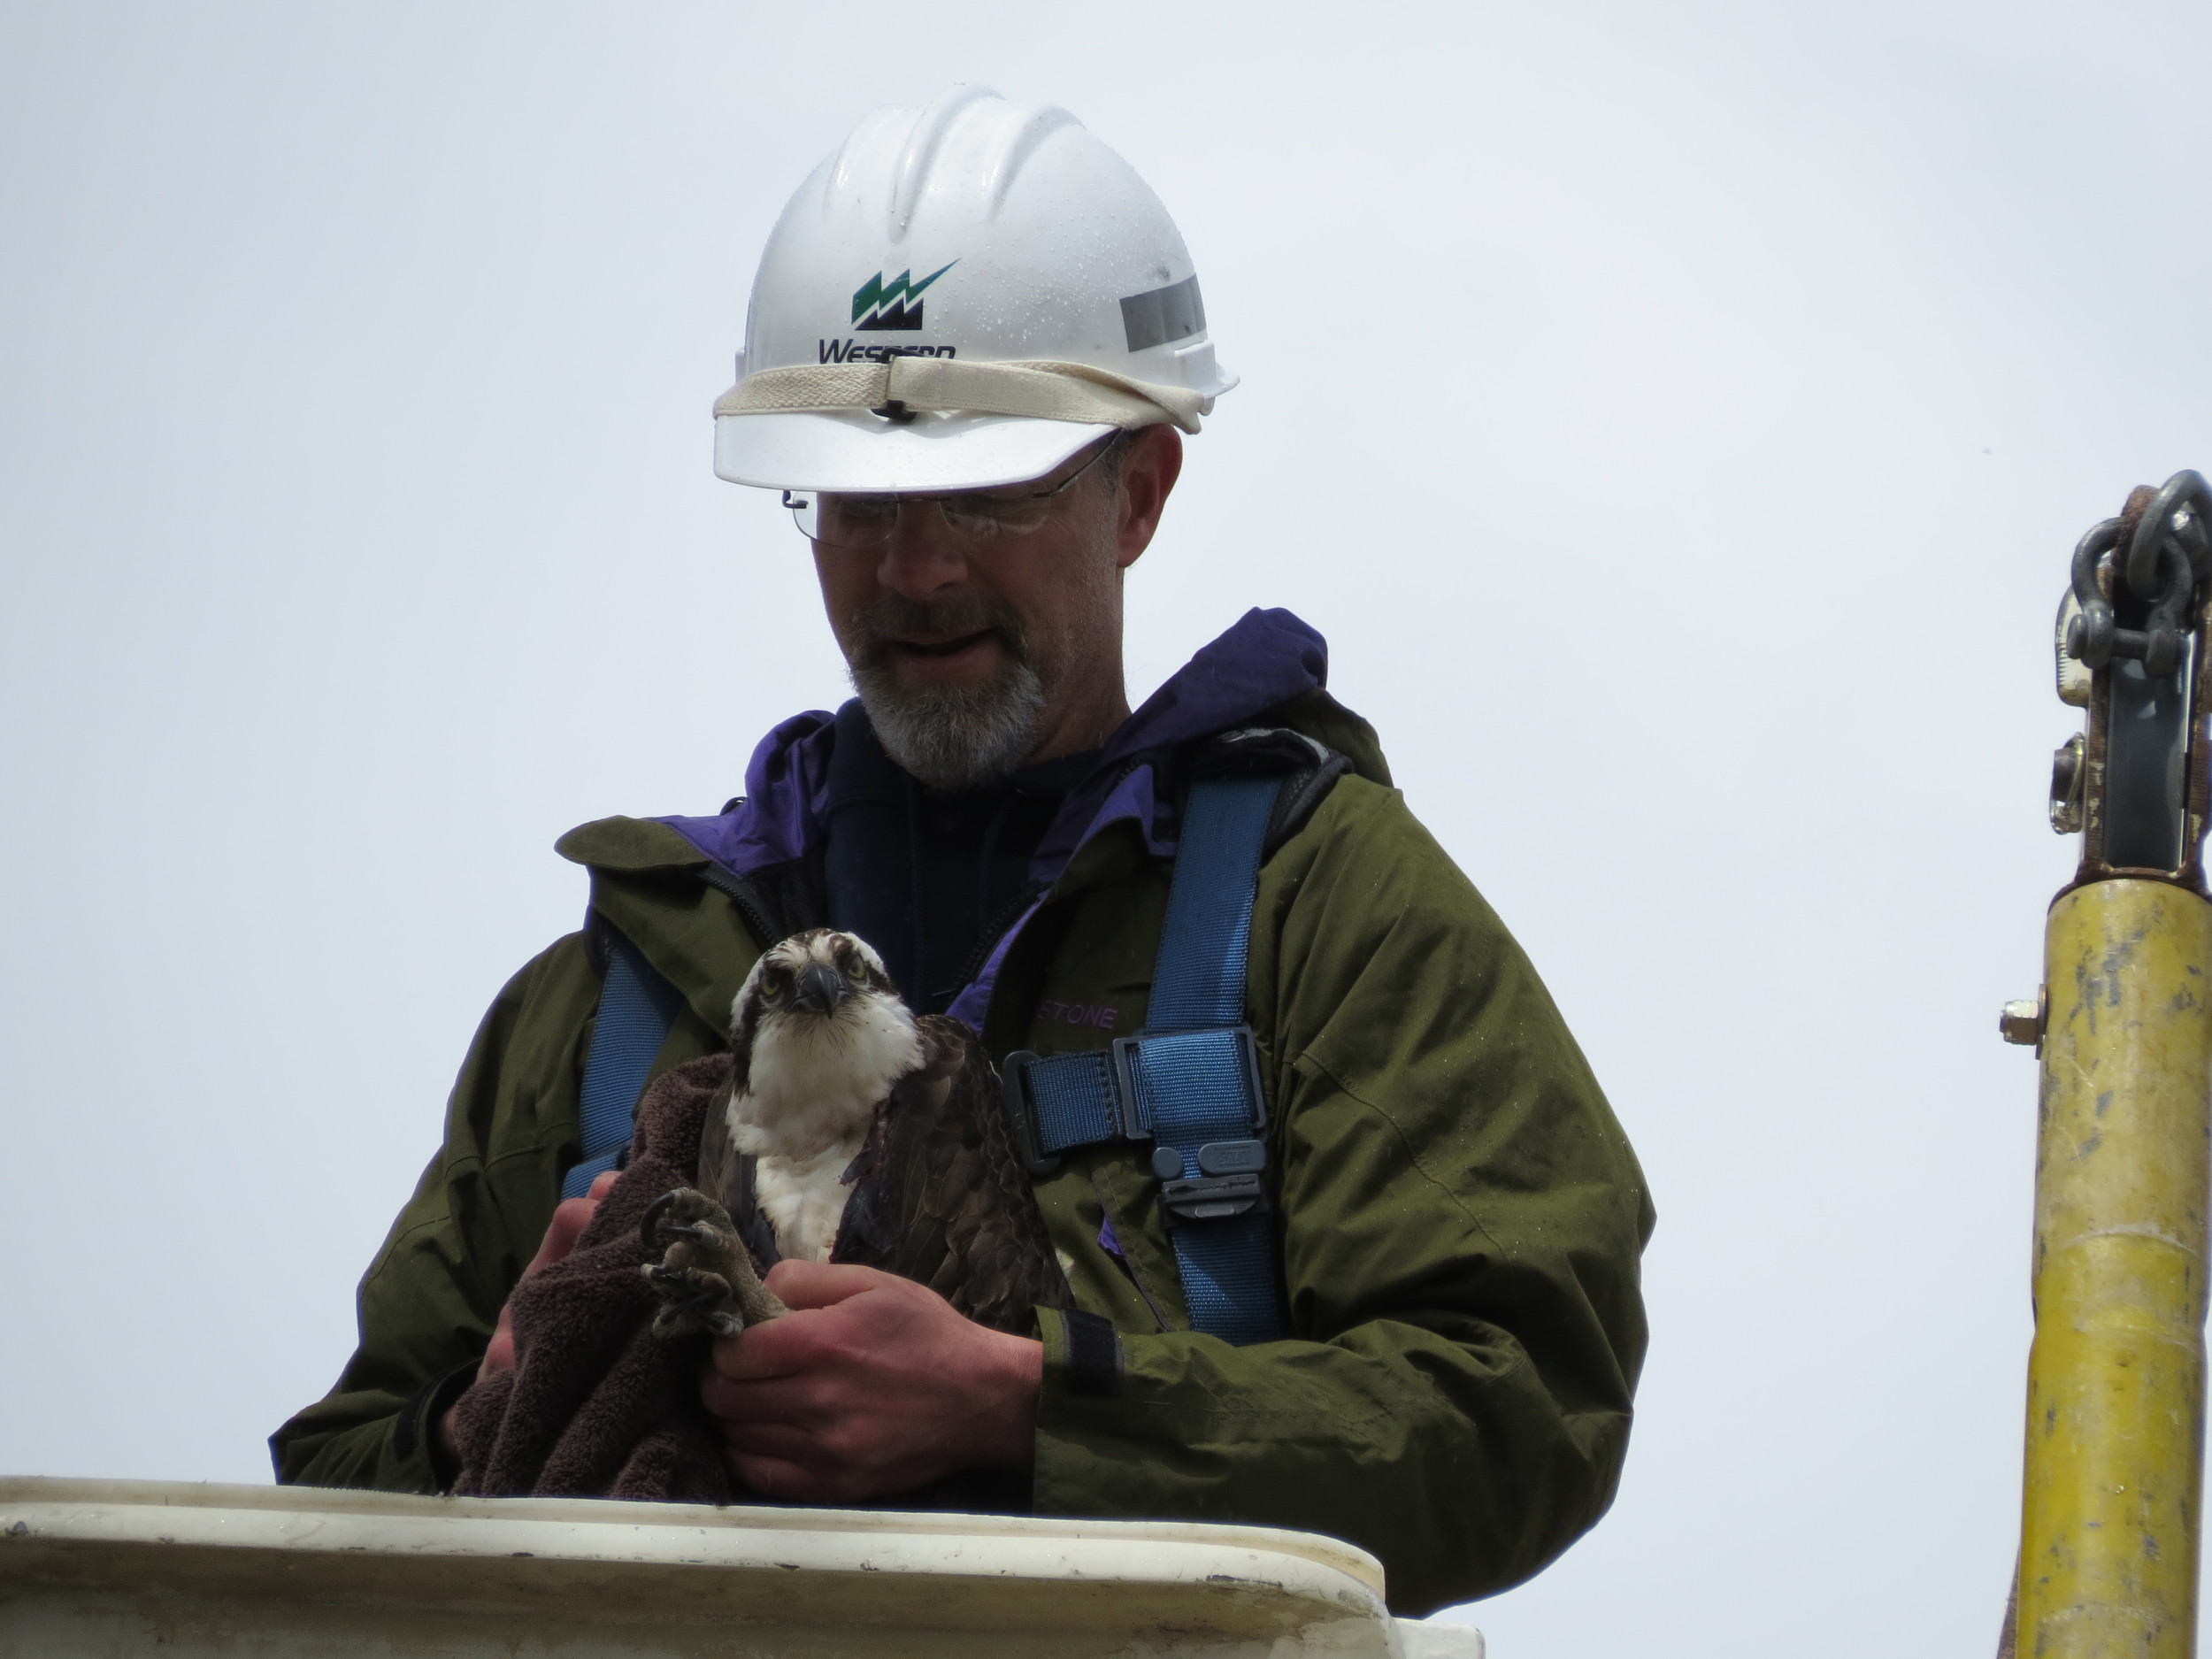 Scott bringing the Osprey down to be taken to a vet for an examination.